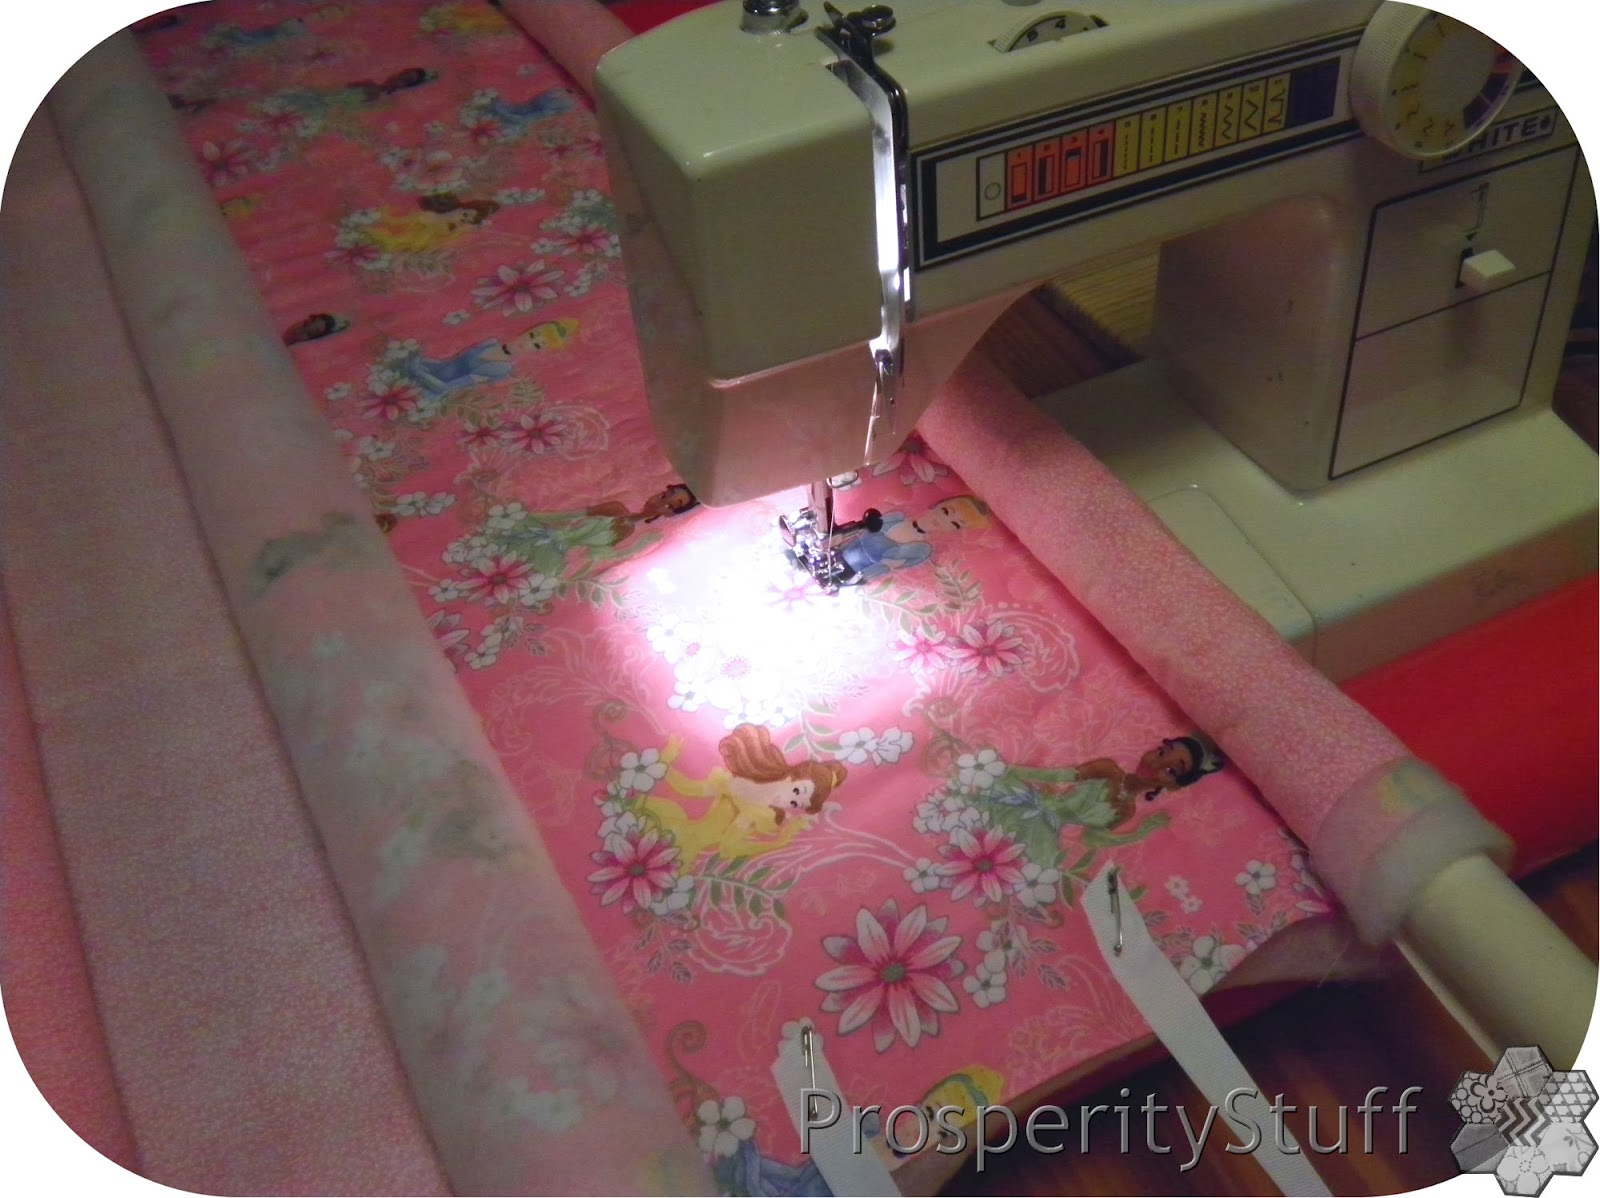 ProsperityStuff Quilts: Wholecloth Quilts on a Frame!